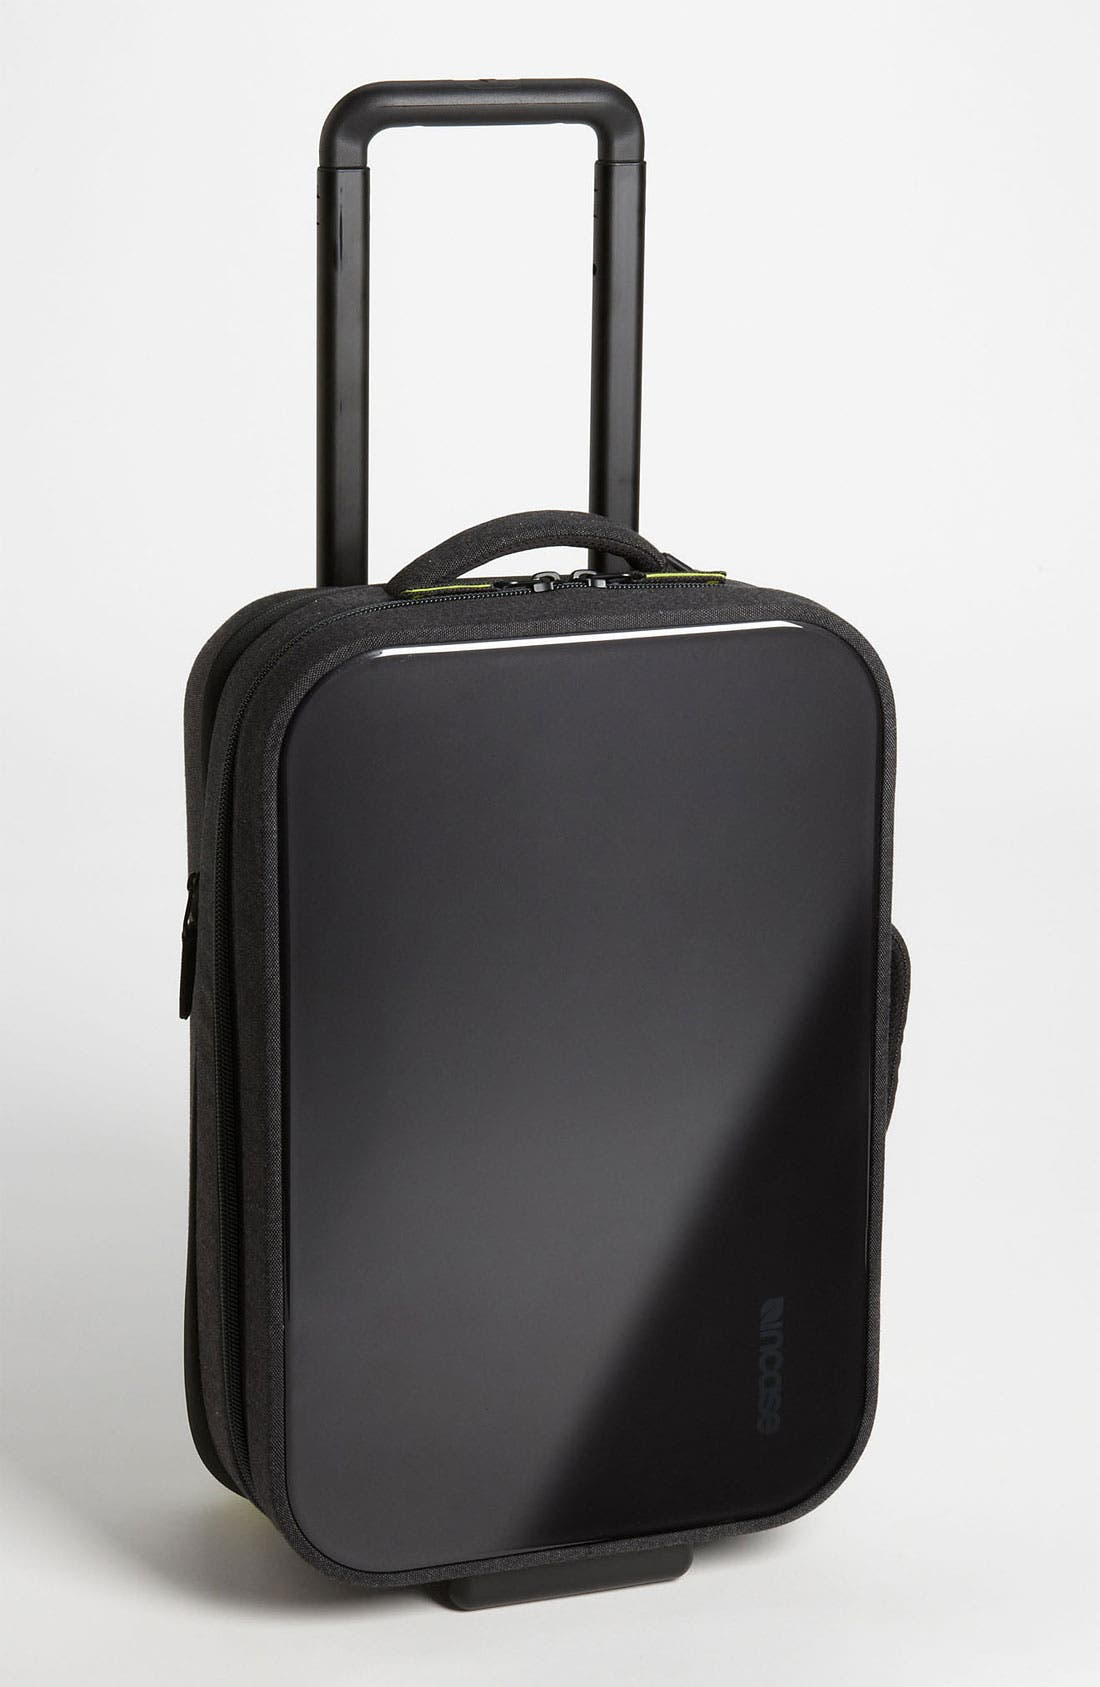 Main Image - Incase Designs 'EO' Hard Shell Roller Suitcase